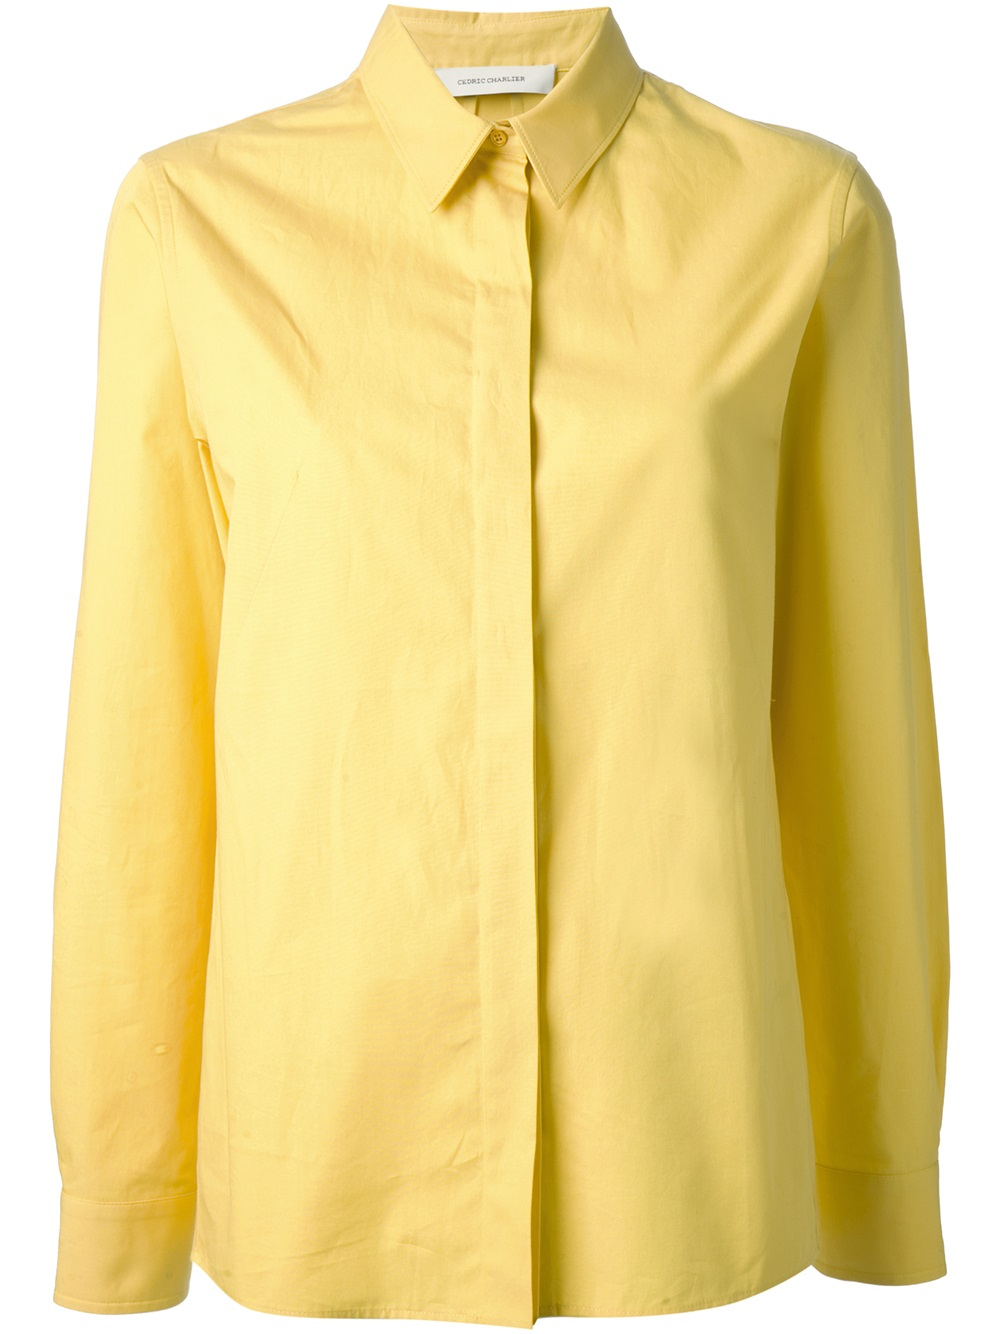 Lyst Cedric Charlier Collared Shirt In Yellow